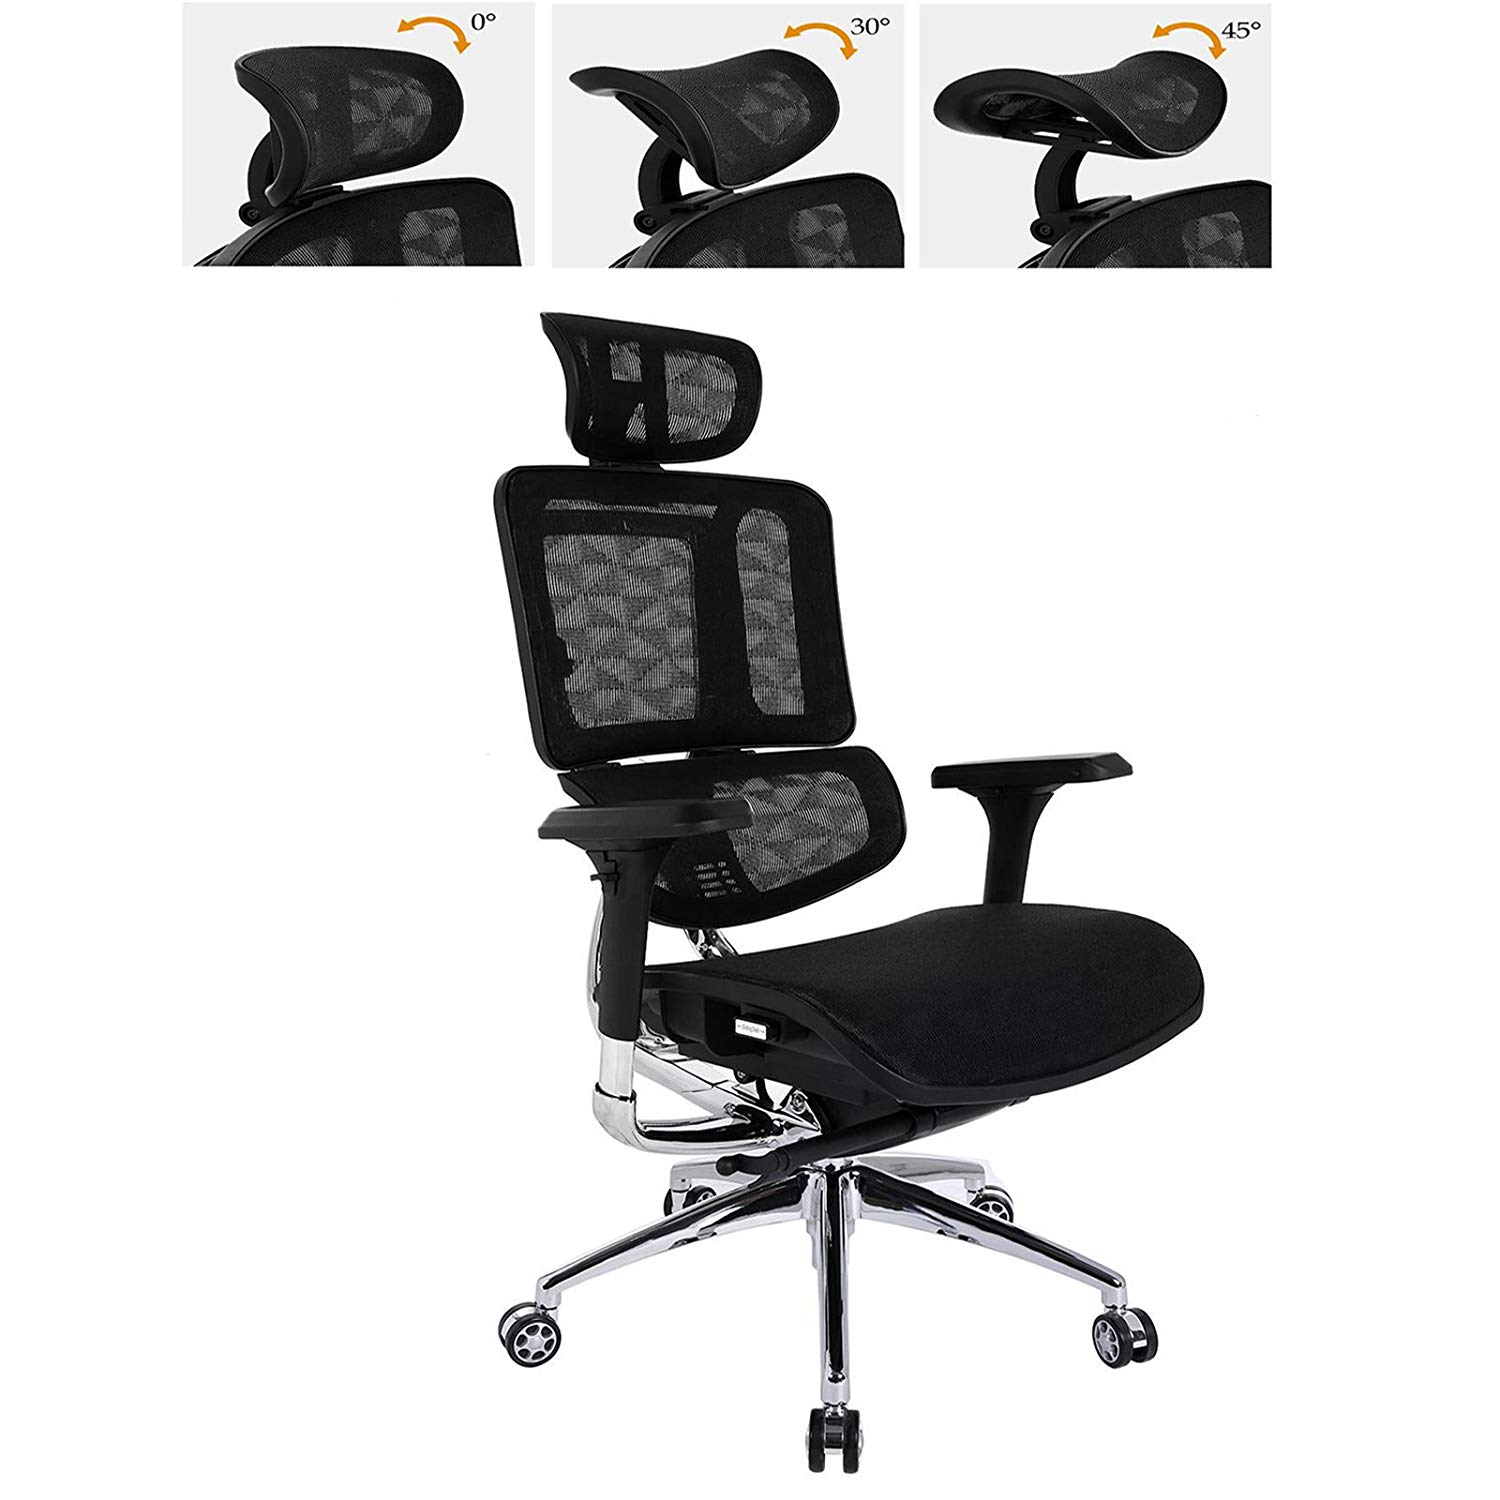 Kaluo Ergonomic Adjustable Drafting Chair Black-High Back Office Chair Mesh Stool Chair with Armrests-Headrest Height & Angle, Backrest, Chair Height Adjustment